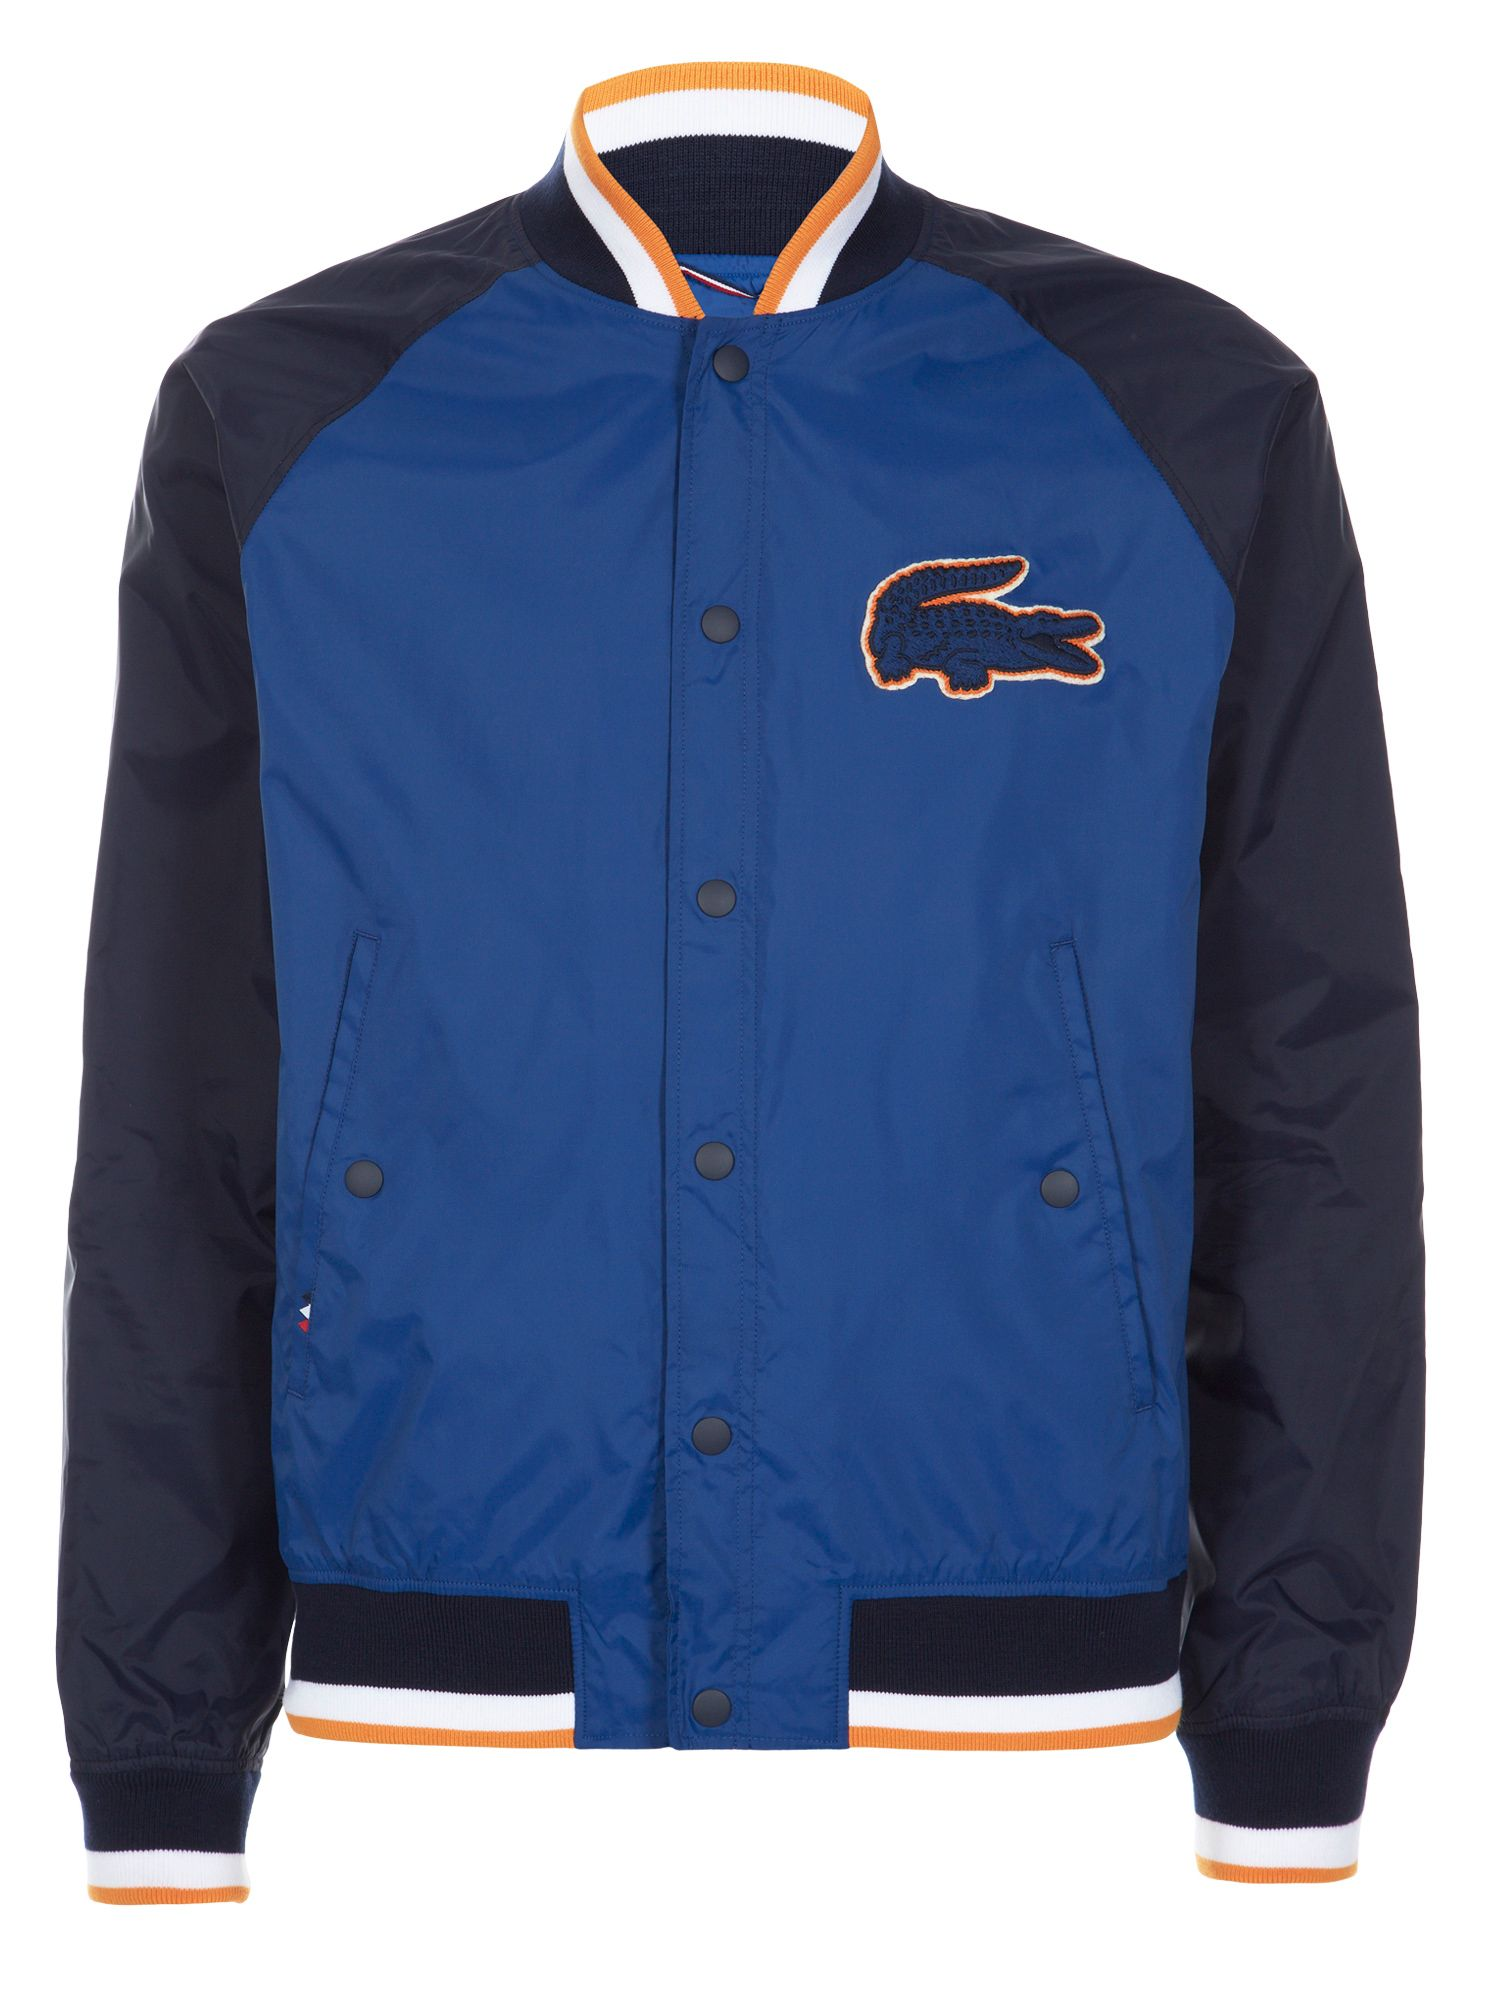 Lacoste L!VE bomber jacket